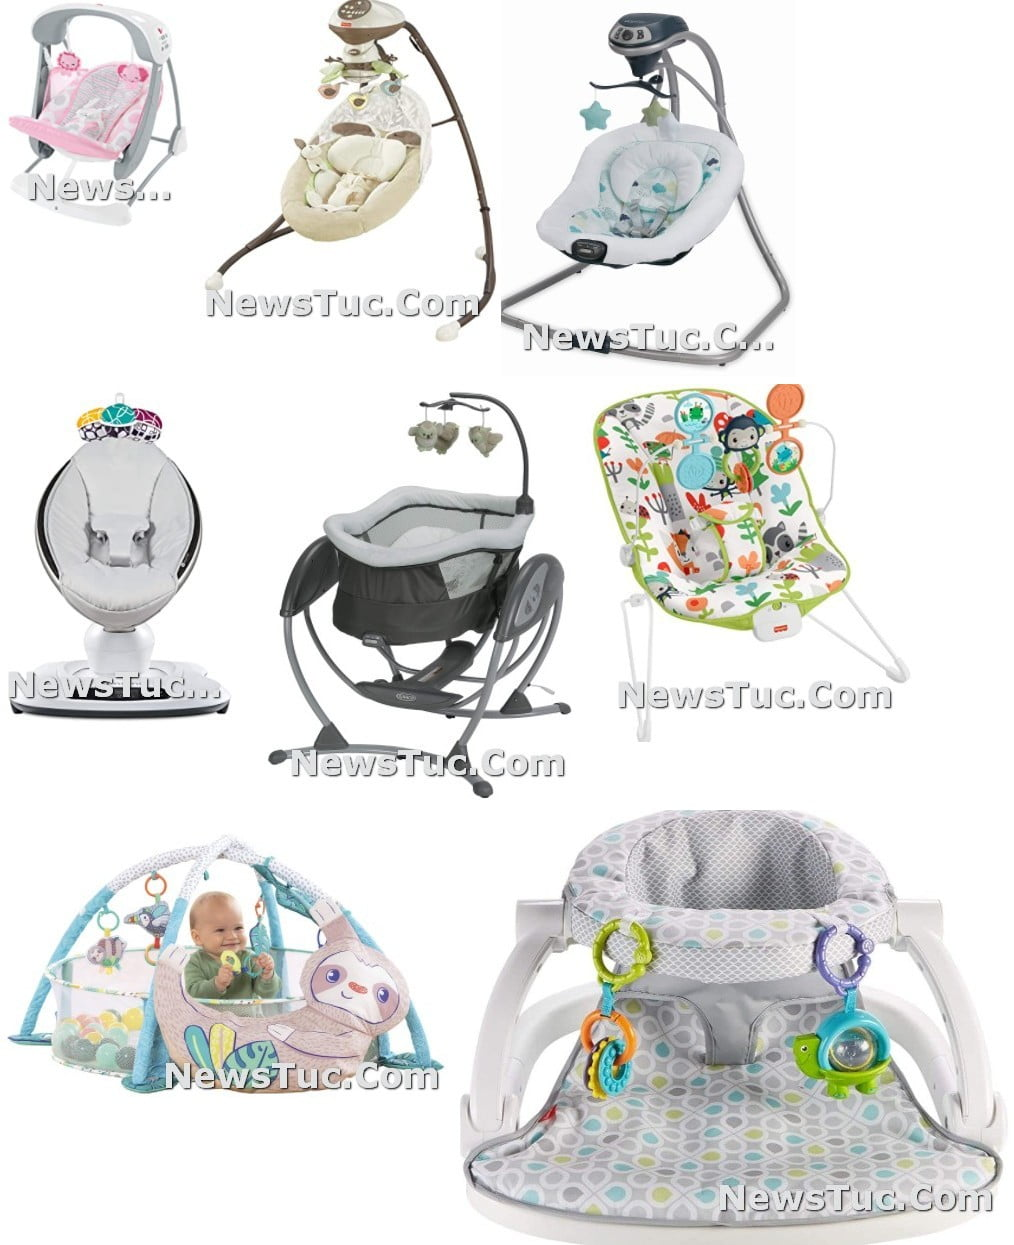 Top small spaces Cheap Price Unique chair Baby Swing